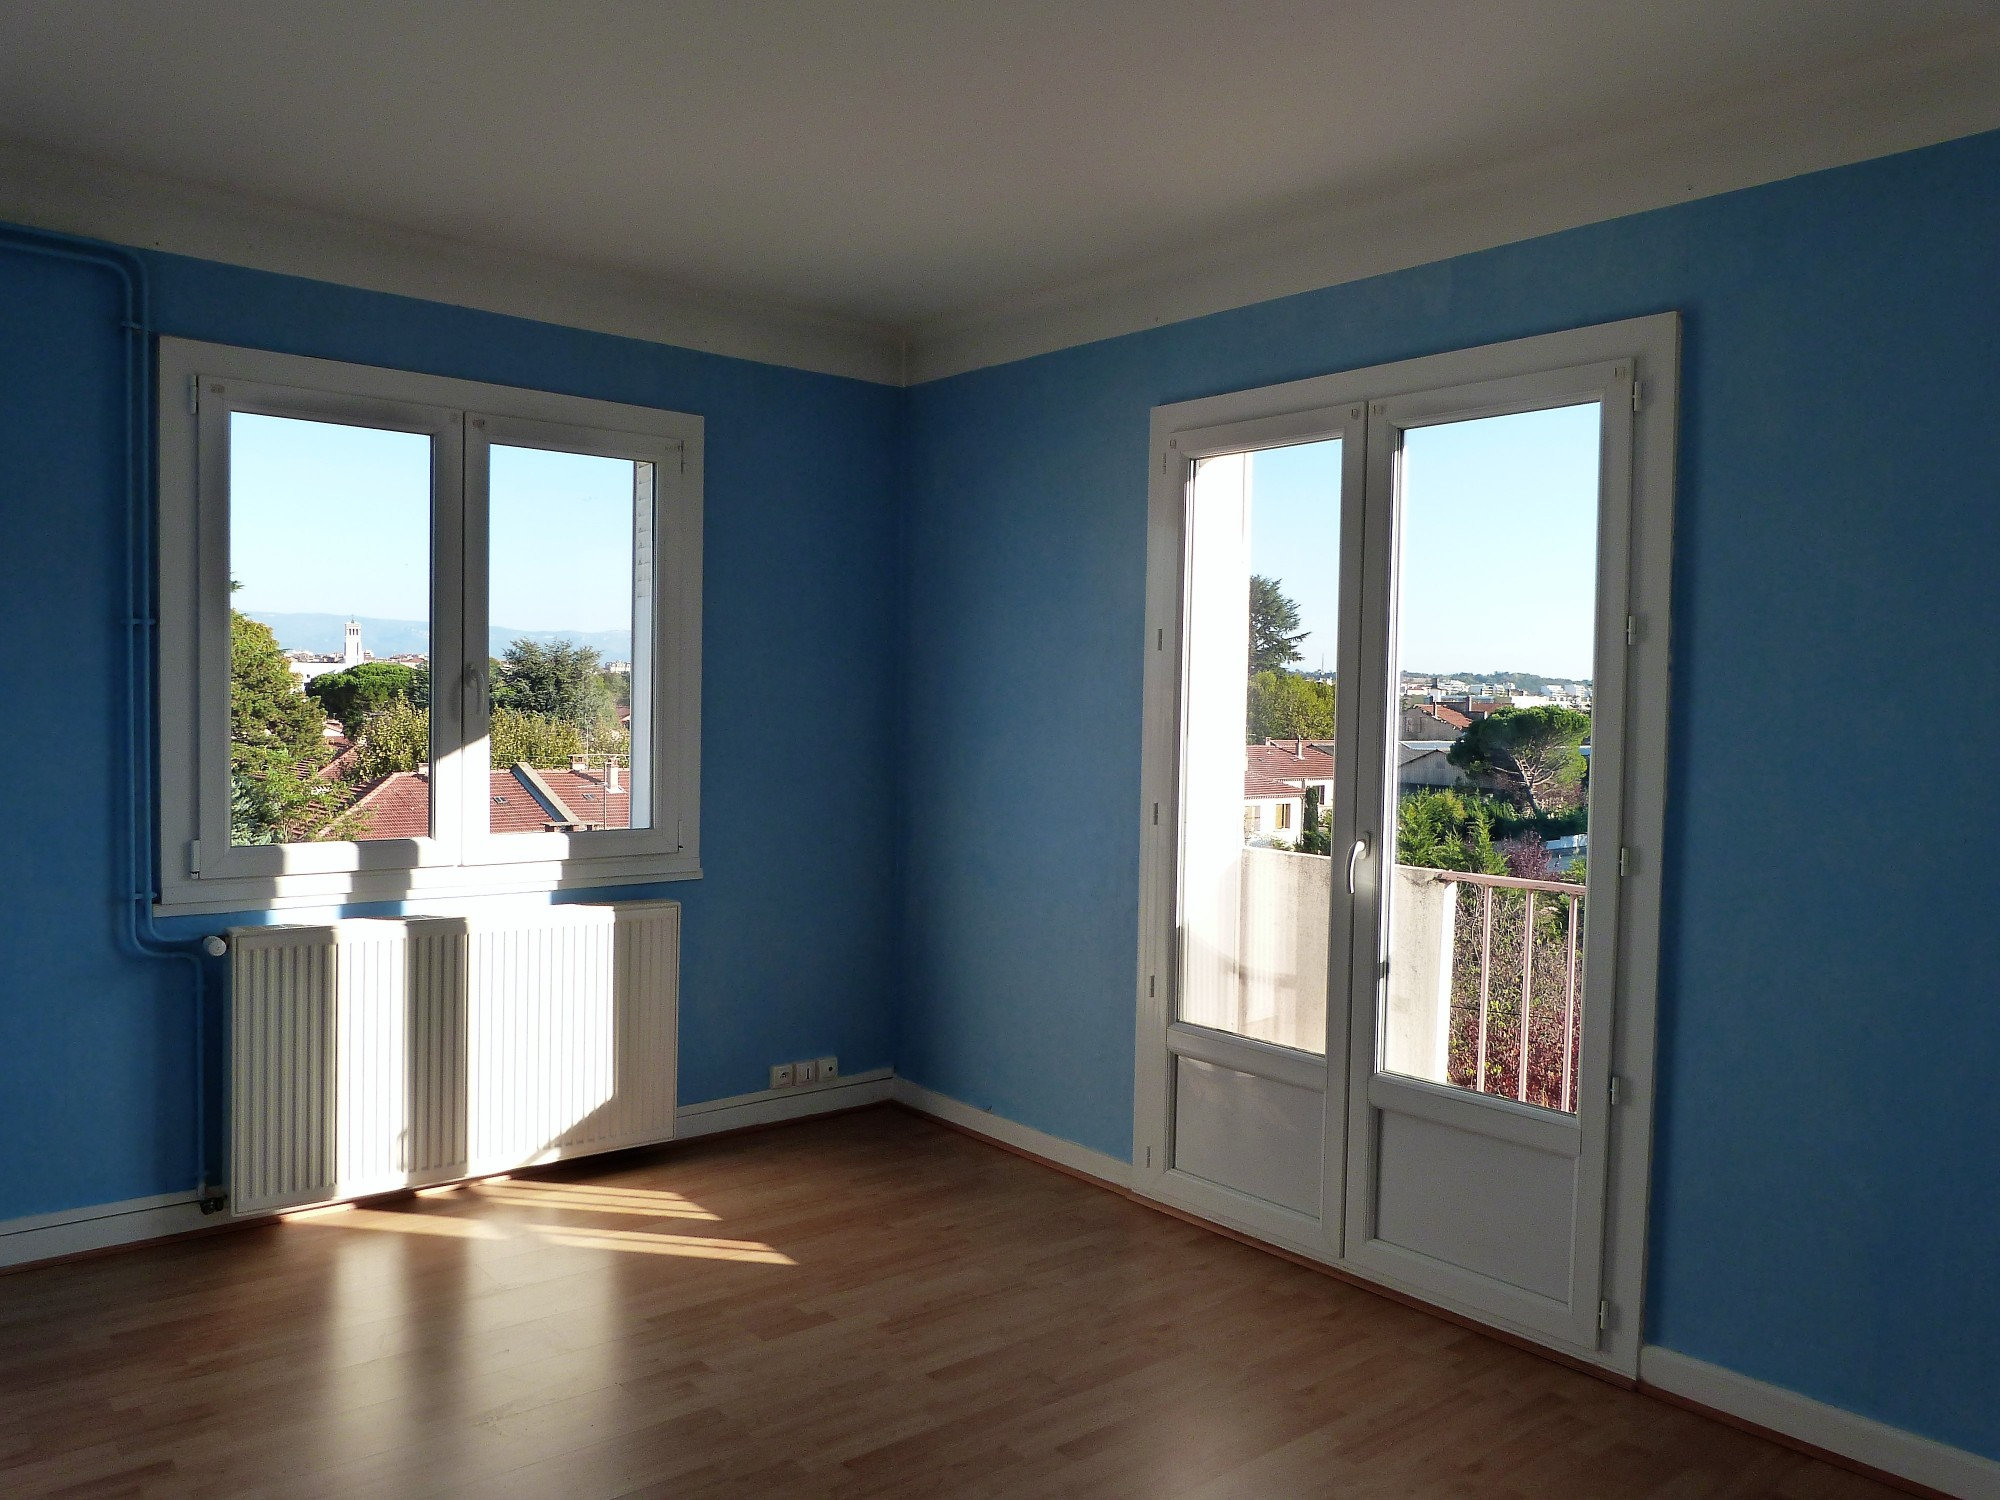 Location appartement sur guilherand granges centre location agence immobili re valence - Location guilherand granges ...